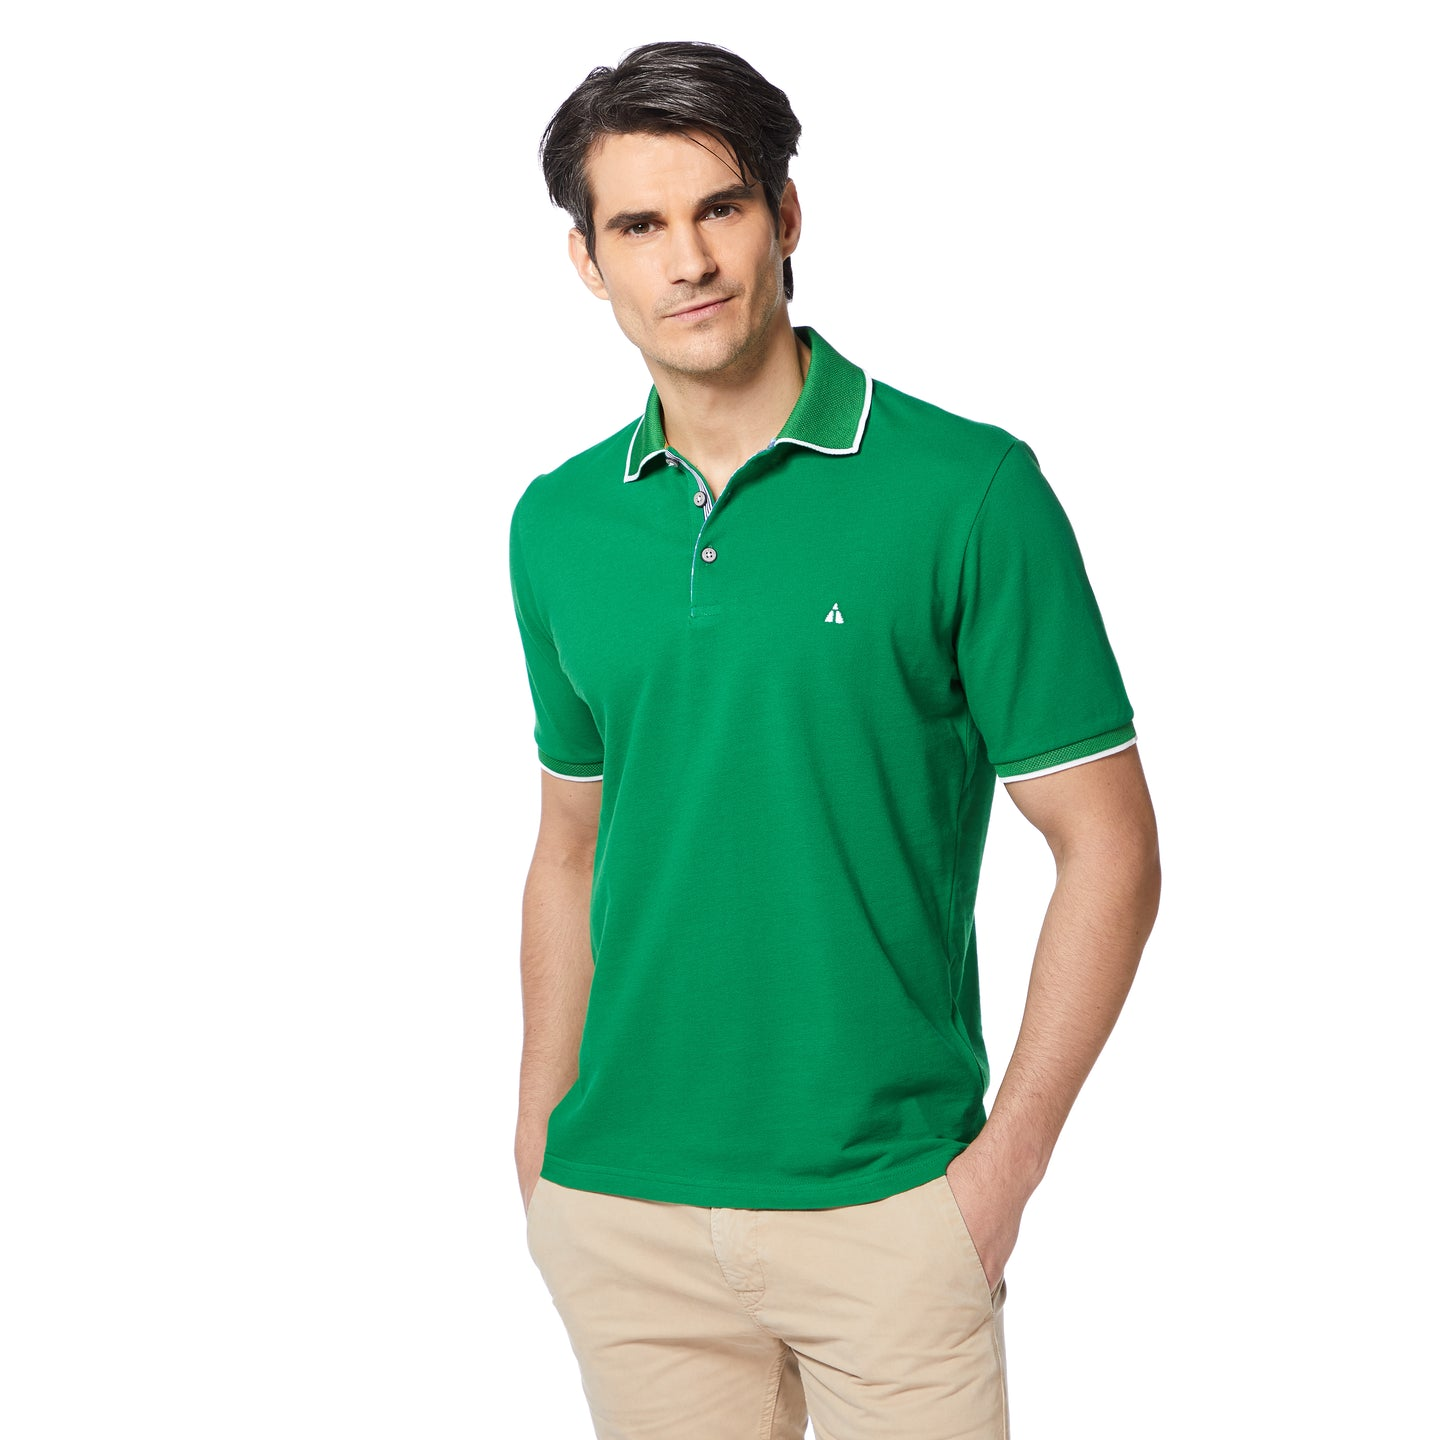 Piping-look Pique Poloshirt MICHAEL